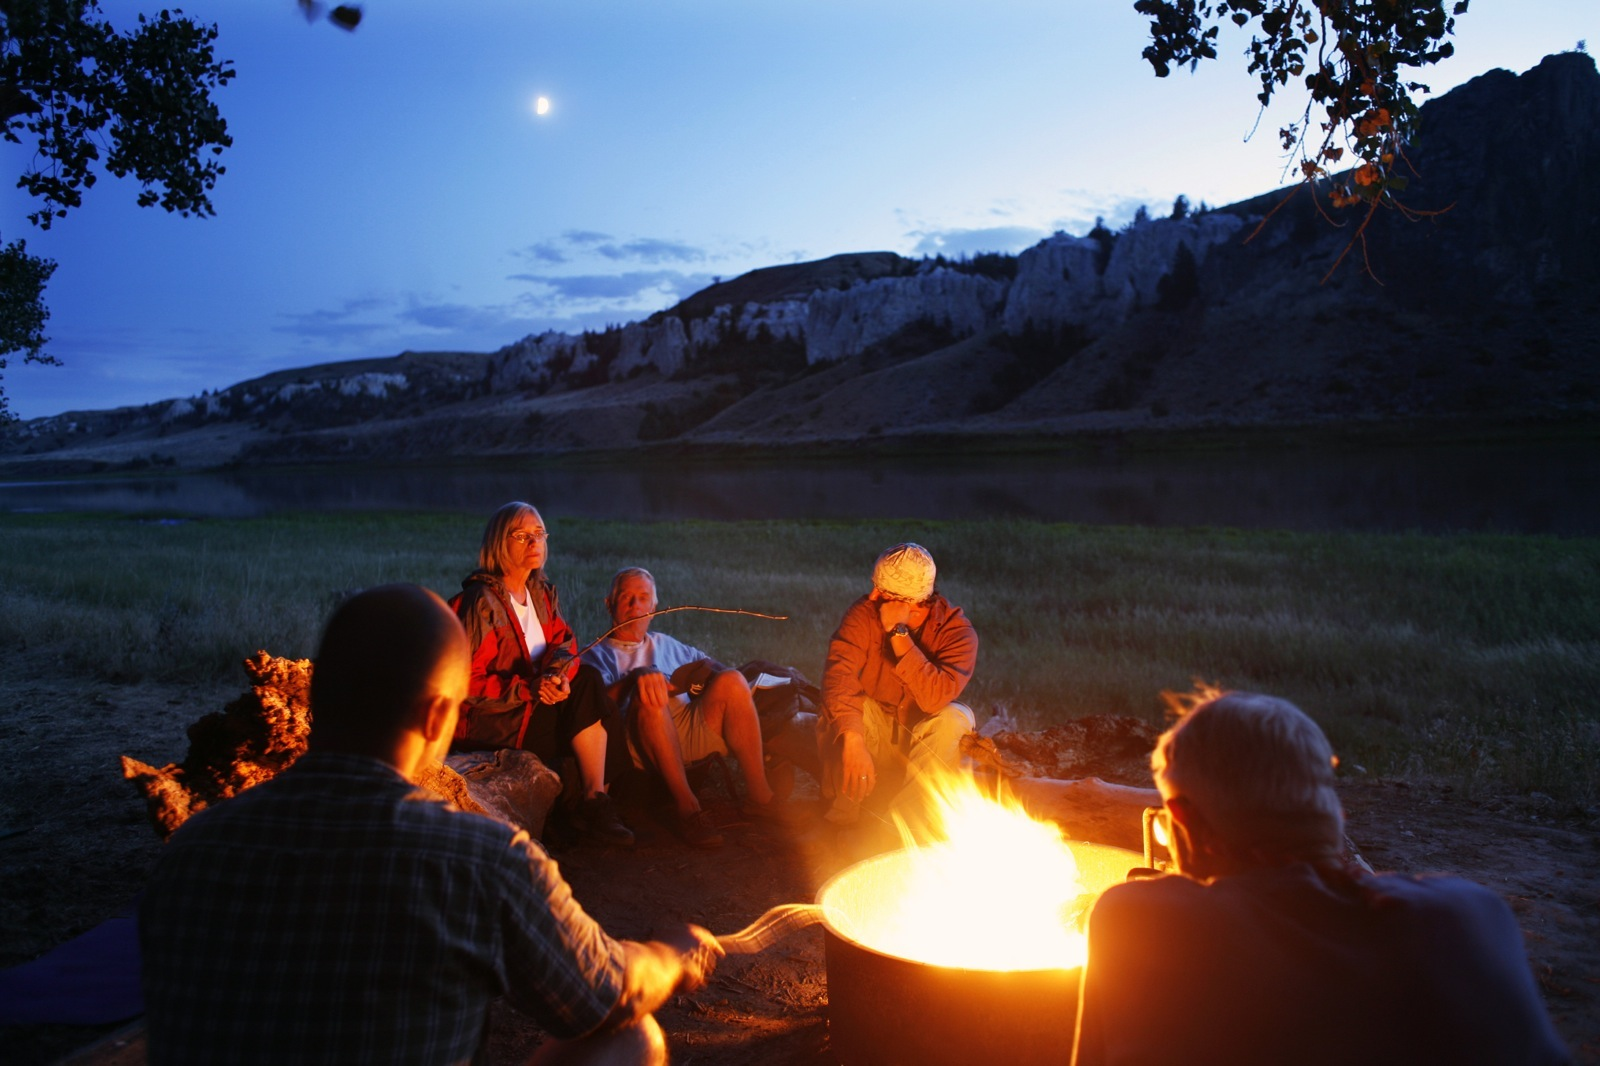 The Wilderness Inquiry group gathers around a campfire at dusk near the site of a stop on the Lewis and Clark expedition.